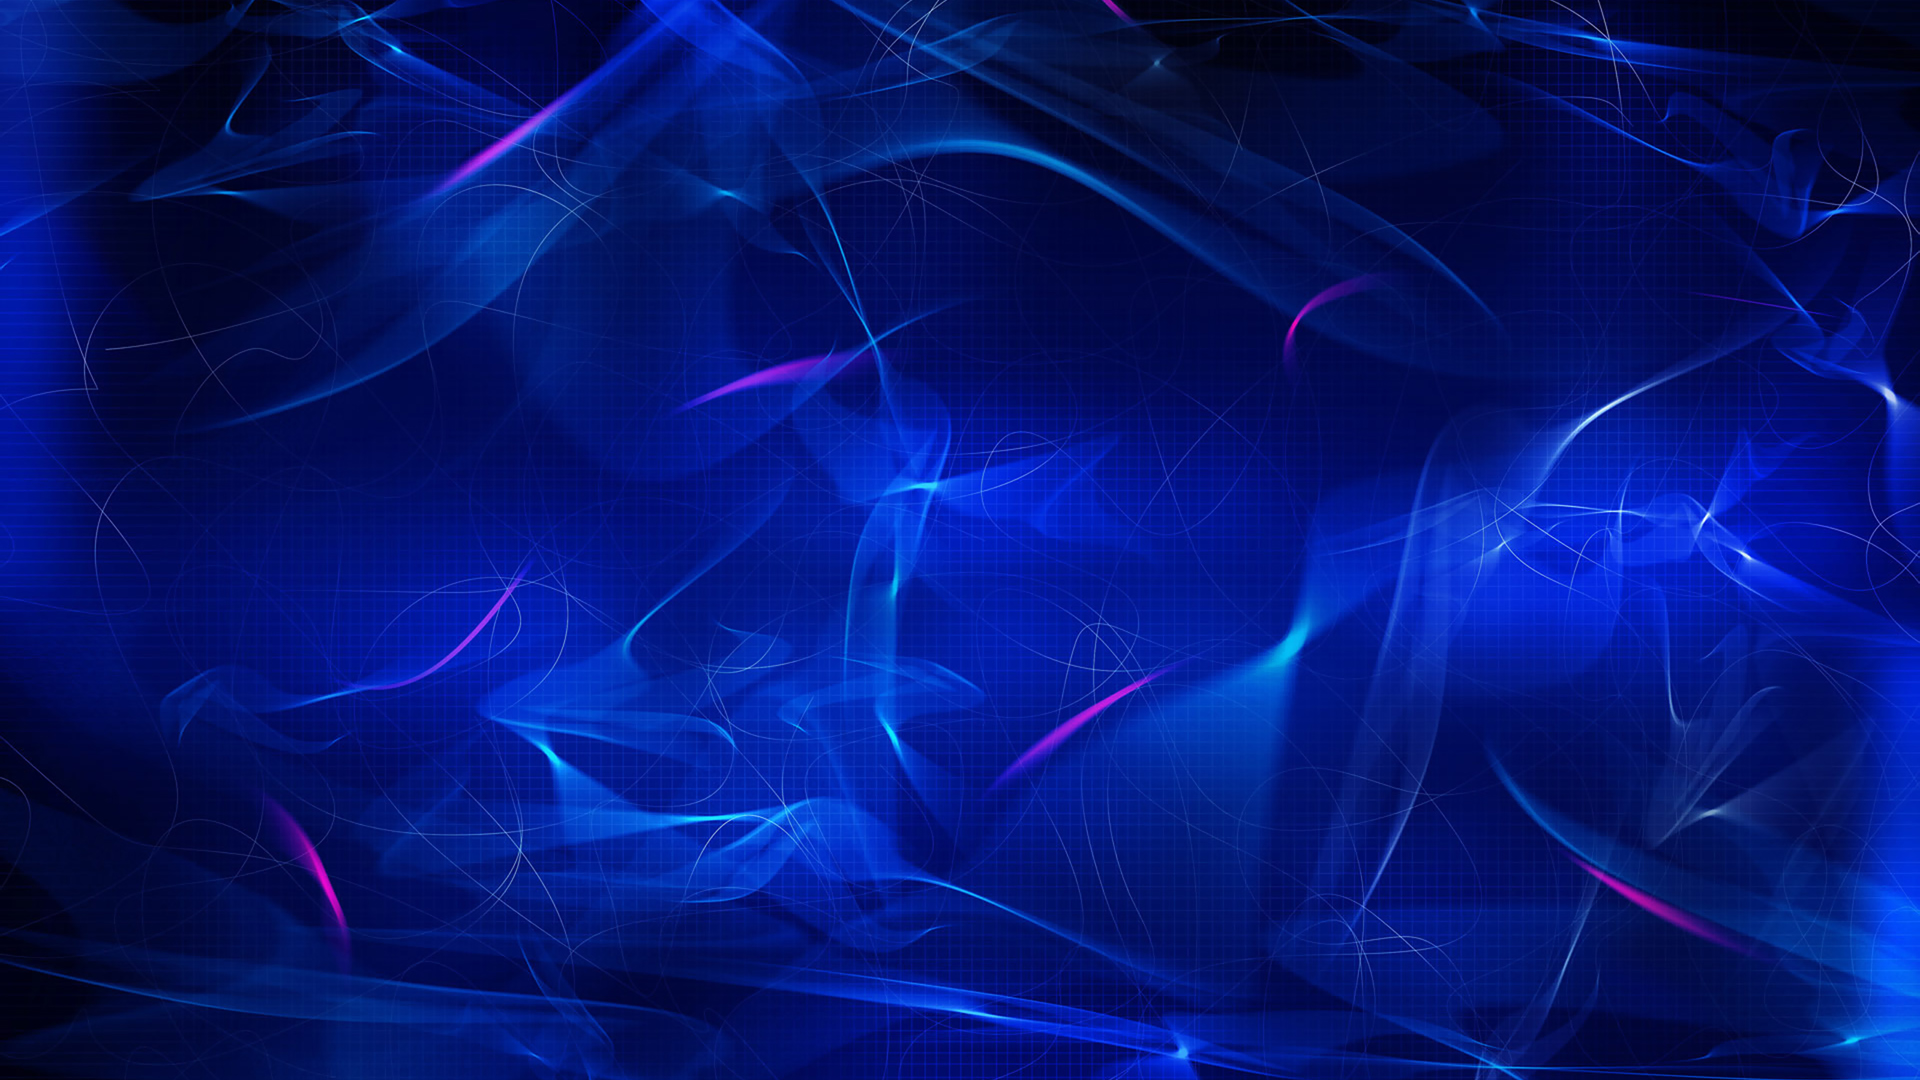 Deep Blue HD Abstract Wallpaper